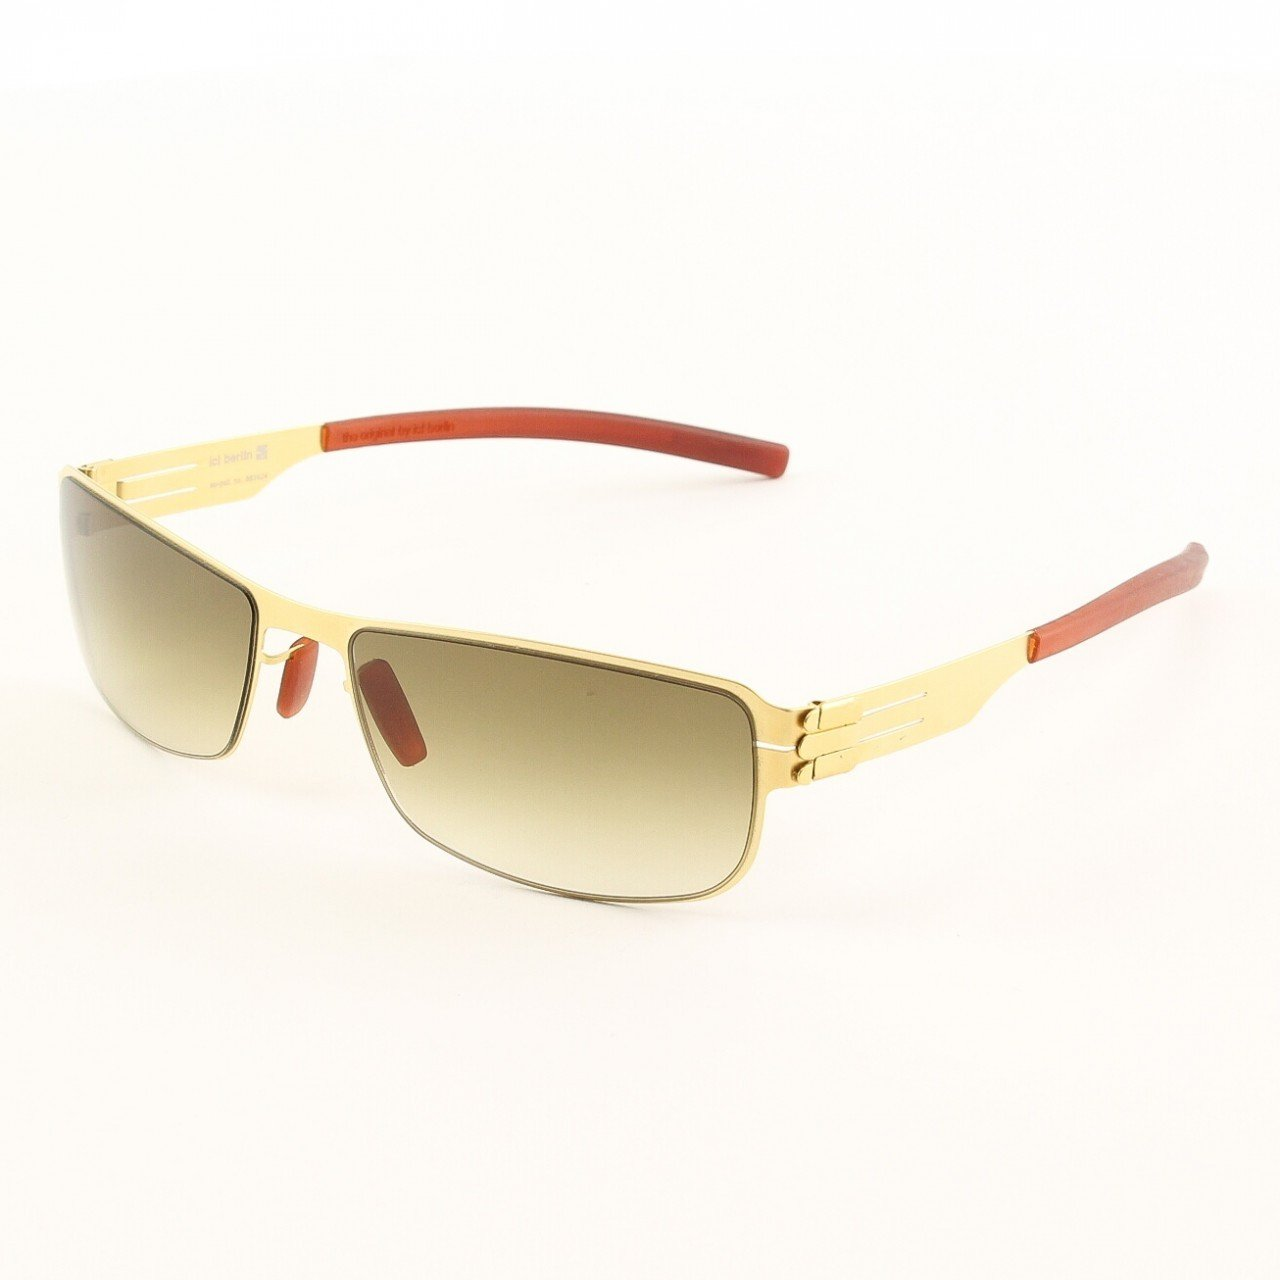 ic! Berlin Vreni Sunglasses Col. Gold with Brown Lenses